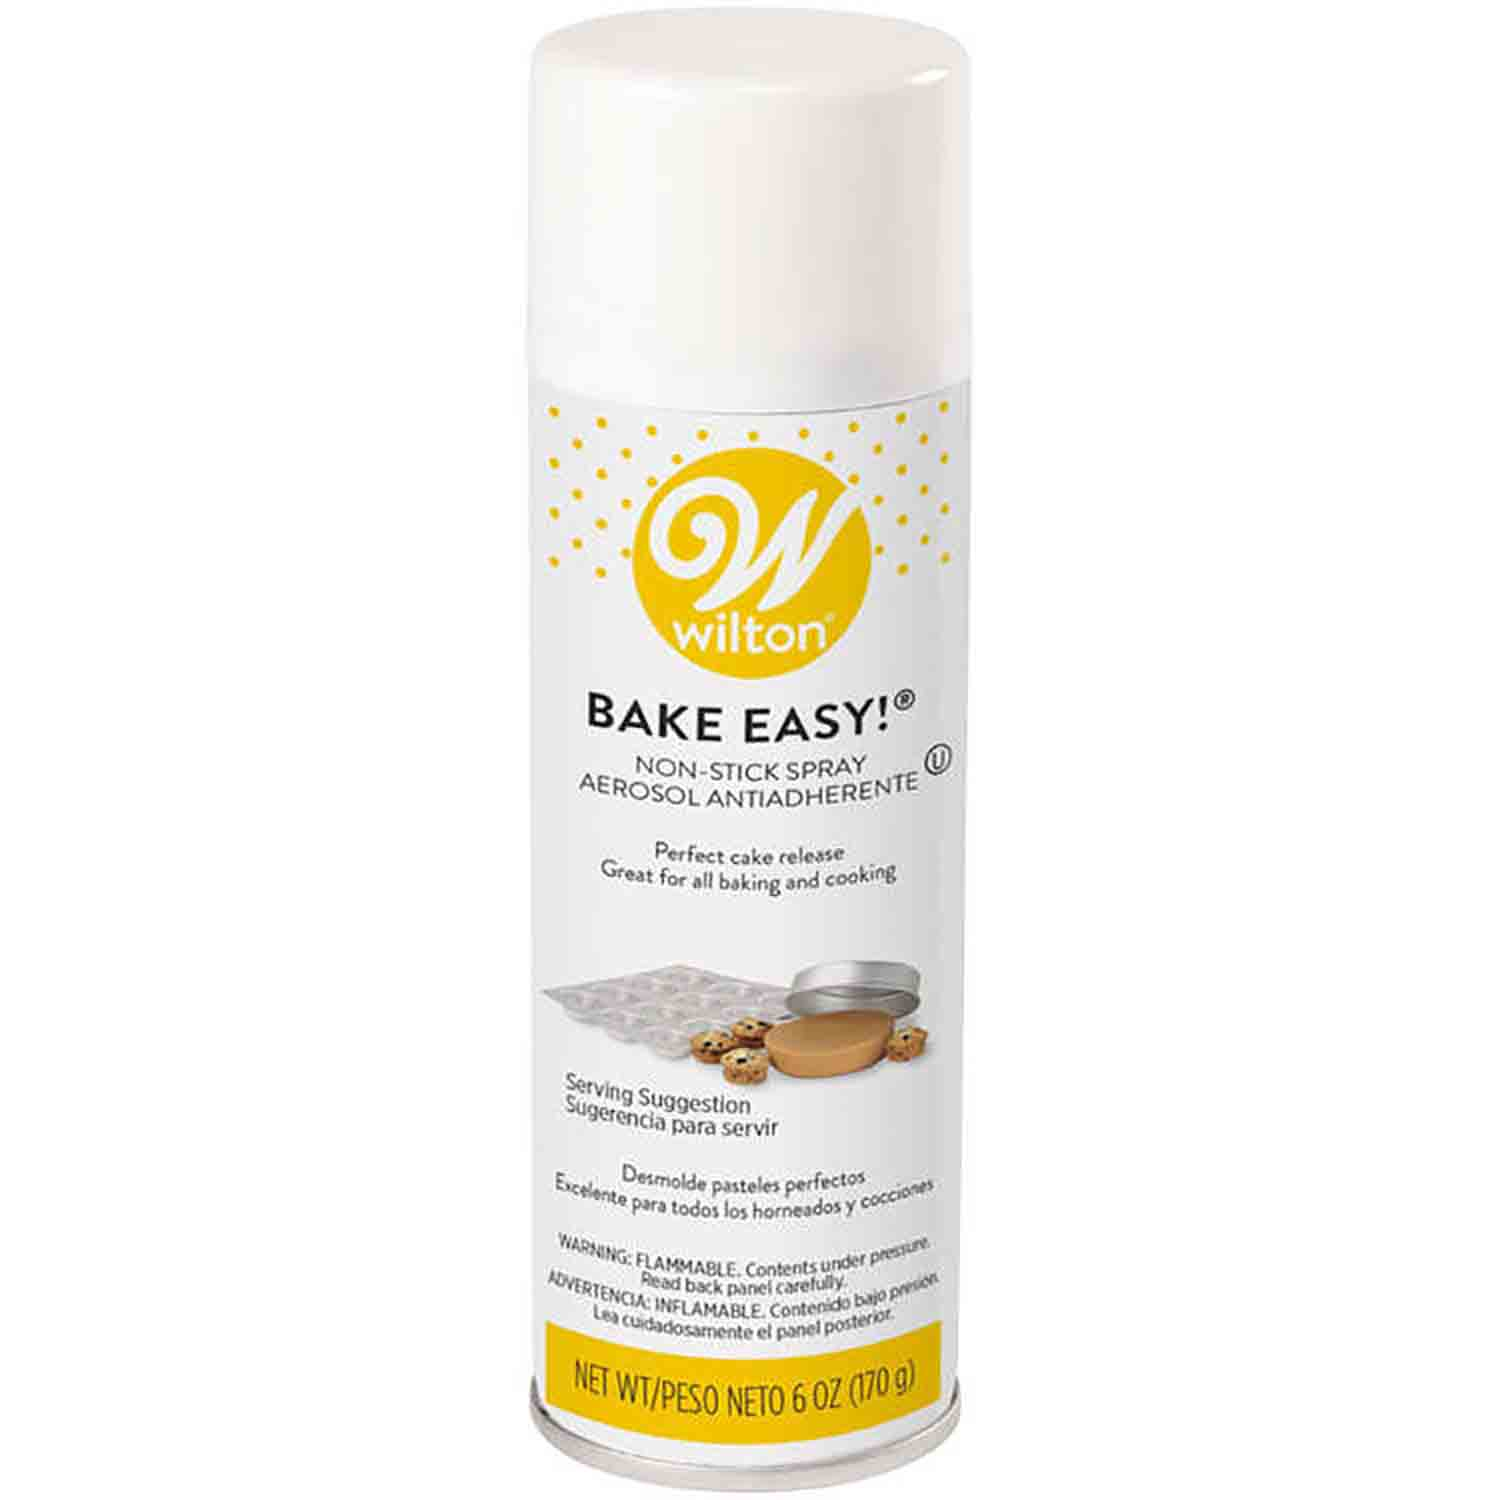 Bake Easy Nonstick Pan Spray